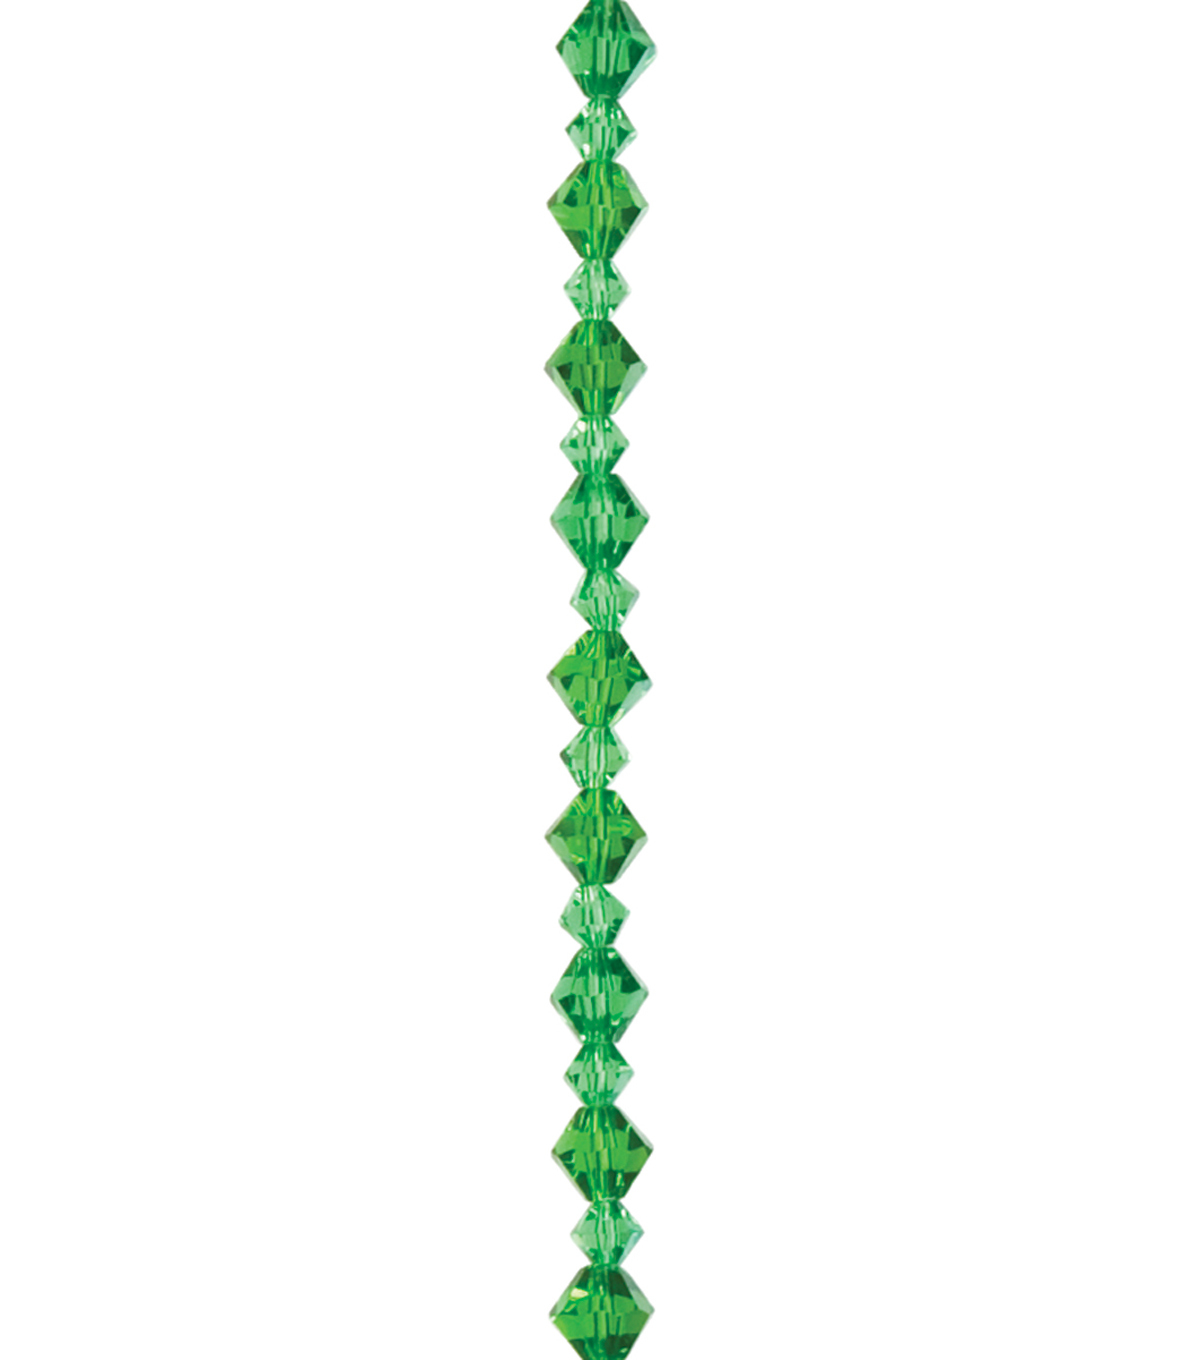 Cousin Jewelry Basics 4mm/6mm Bicone Beads 45/Pkg-Green